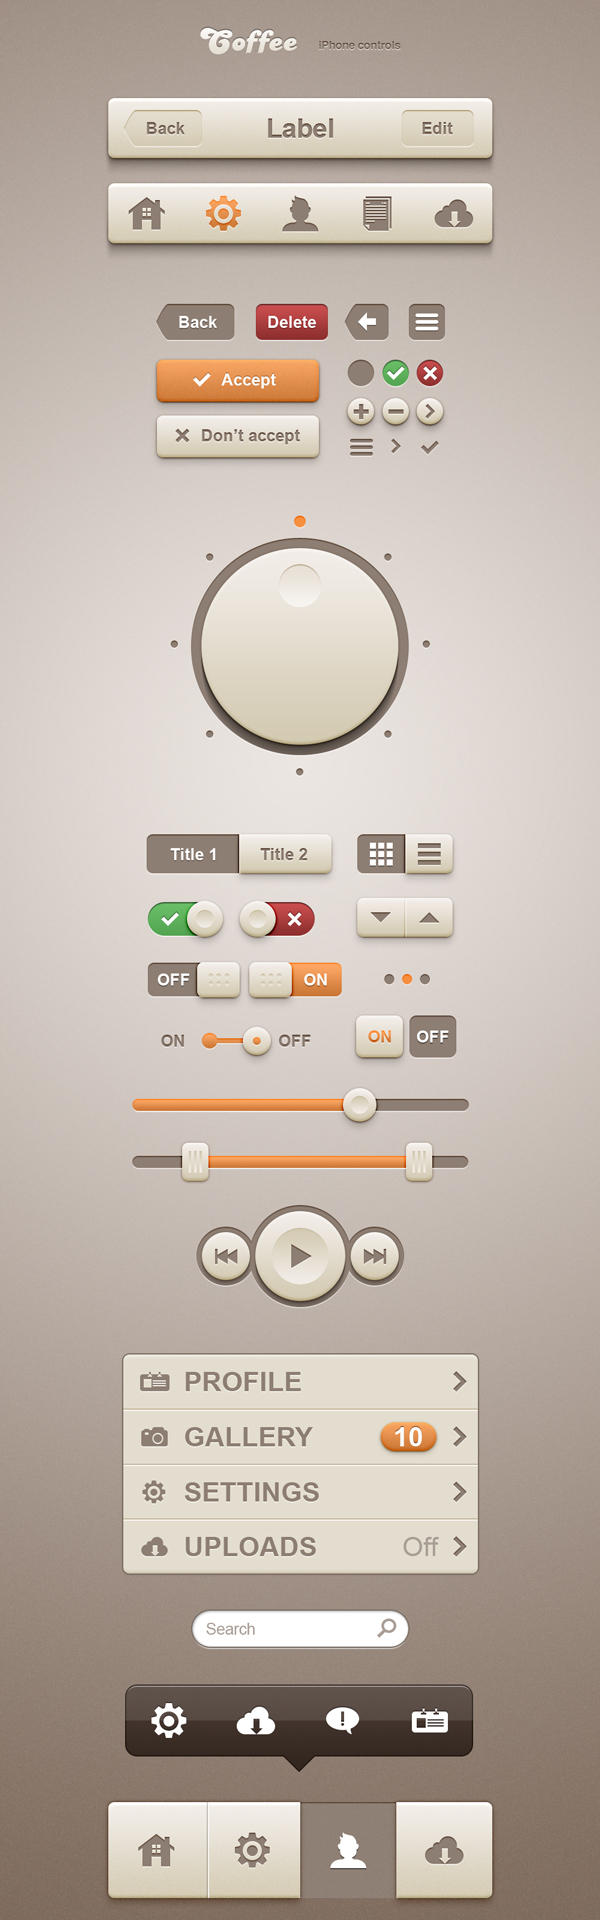 coffee_iphone_controls_2x